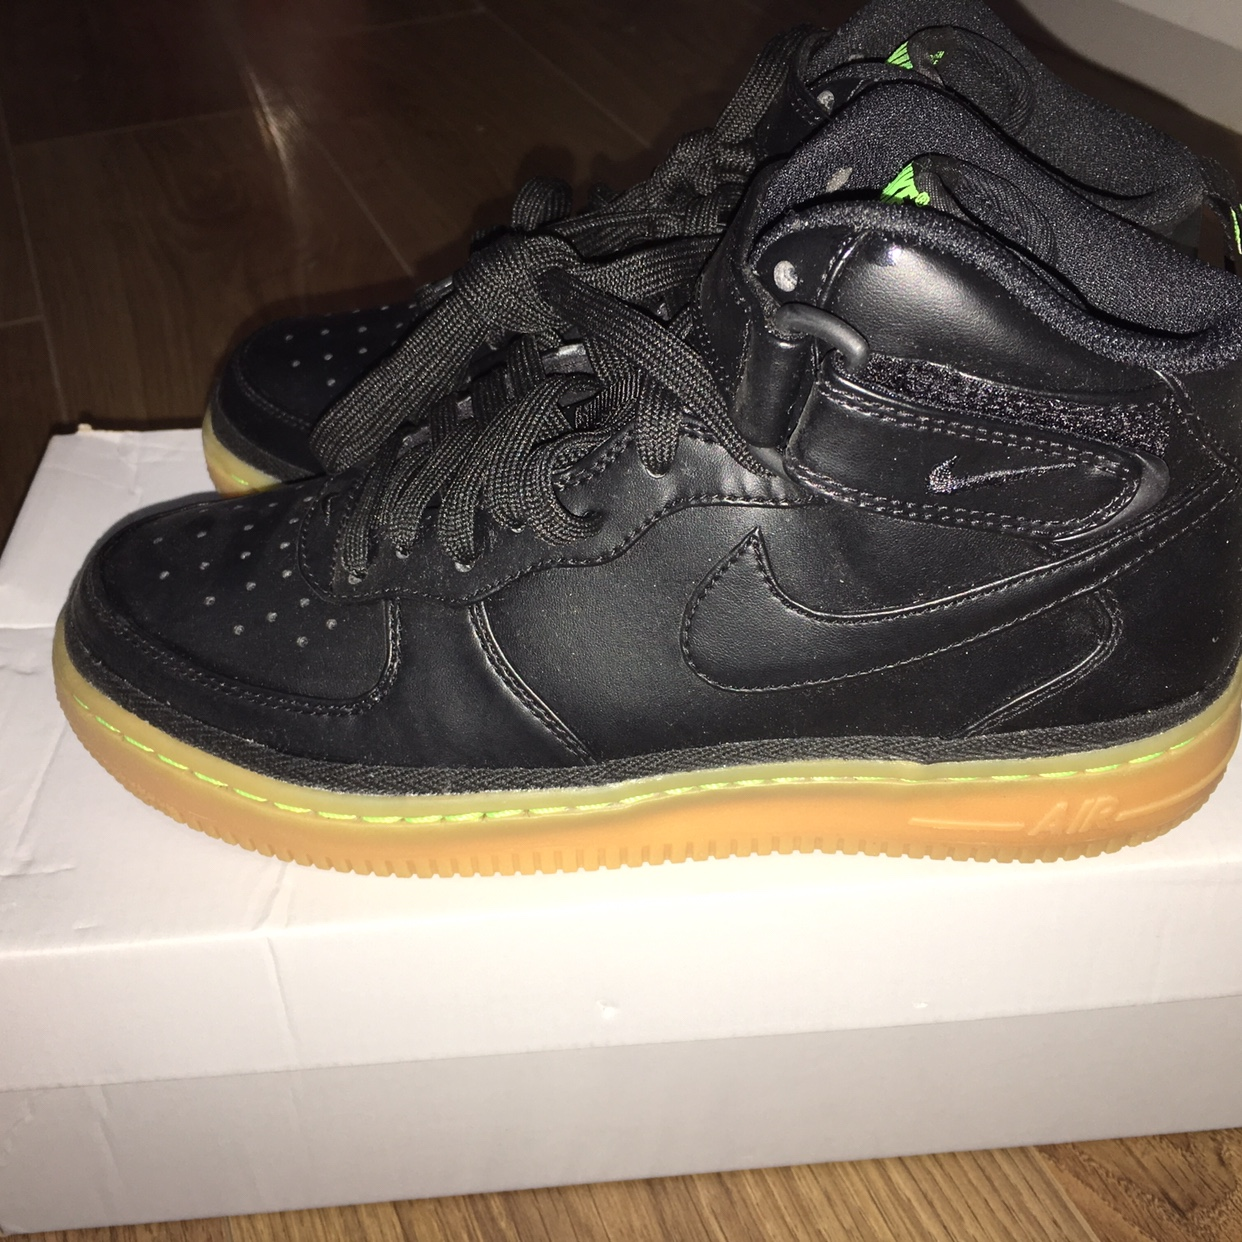 uk availability 21c4b df5a5 Nike Air force 1 Mid /High tops Size: 5 UK Brand new... - Depop